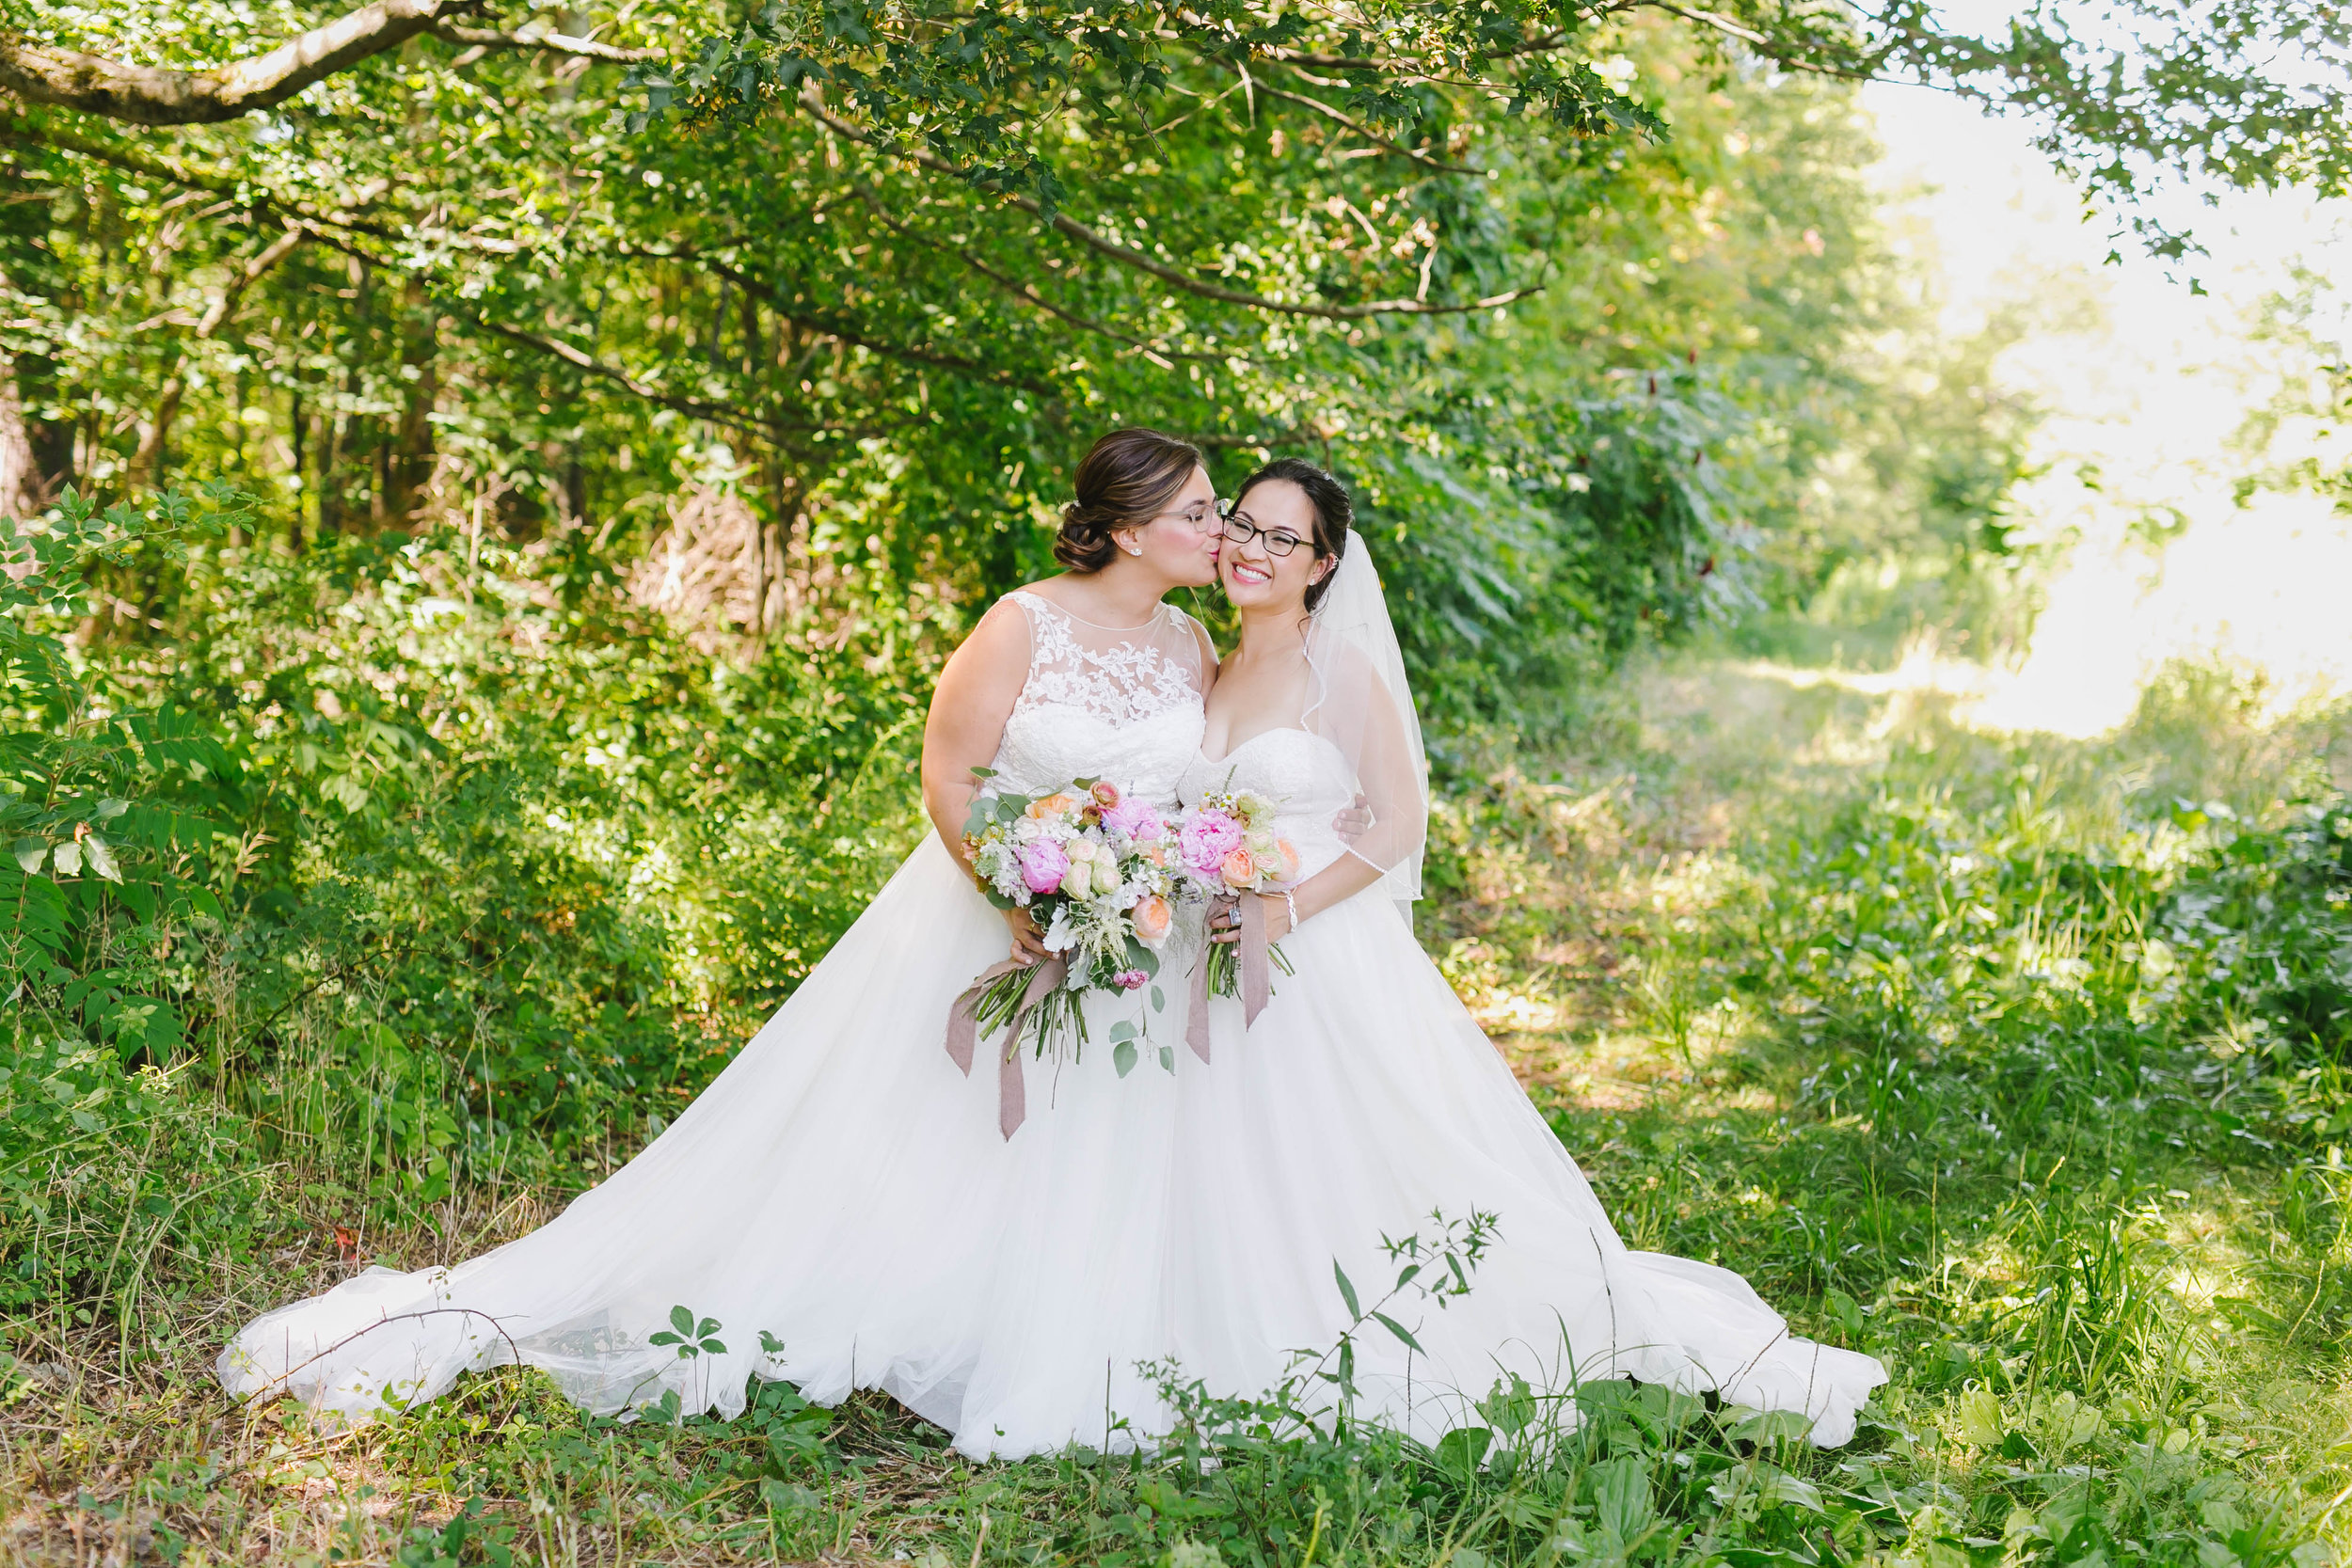 Hyland Orchard and Brewery Wedding with dogs - Emily Tebbetts Photography-8.jpg